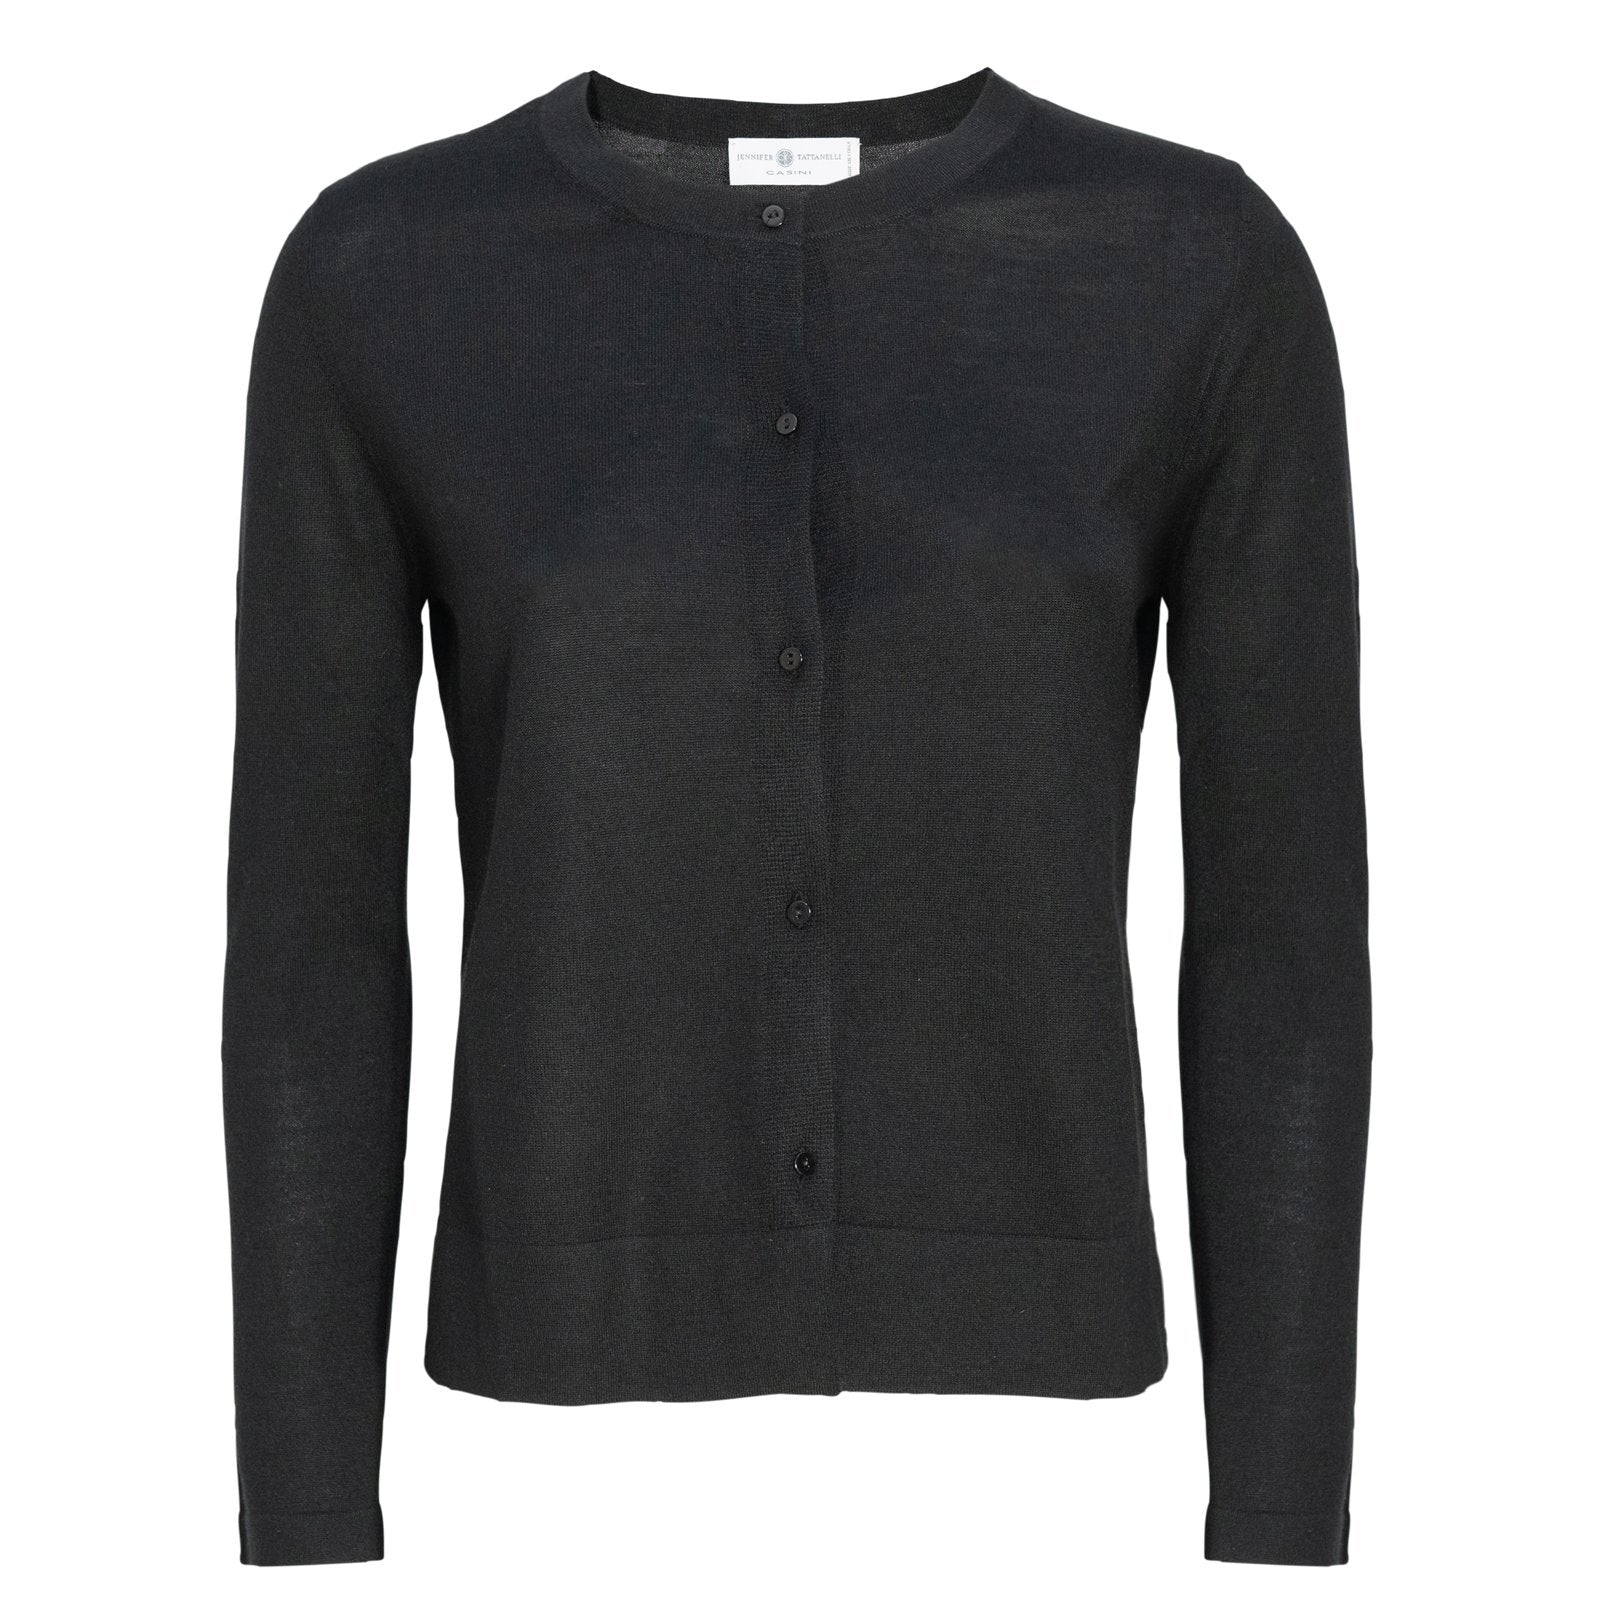 Women Black Cardigan Knitwear PUR2112 - Jennifer Tattanelli